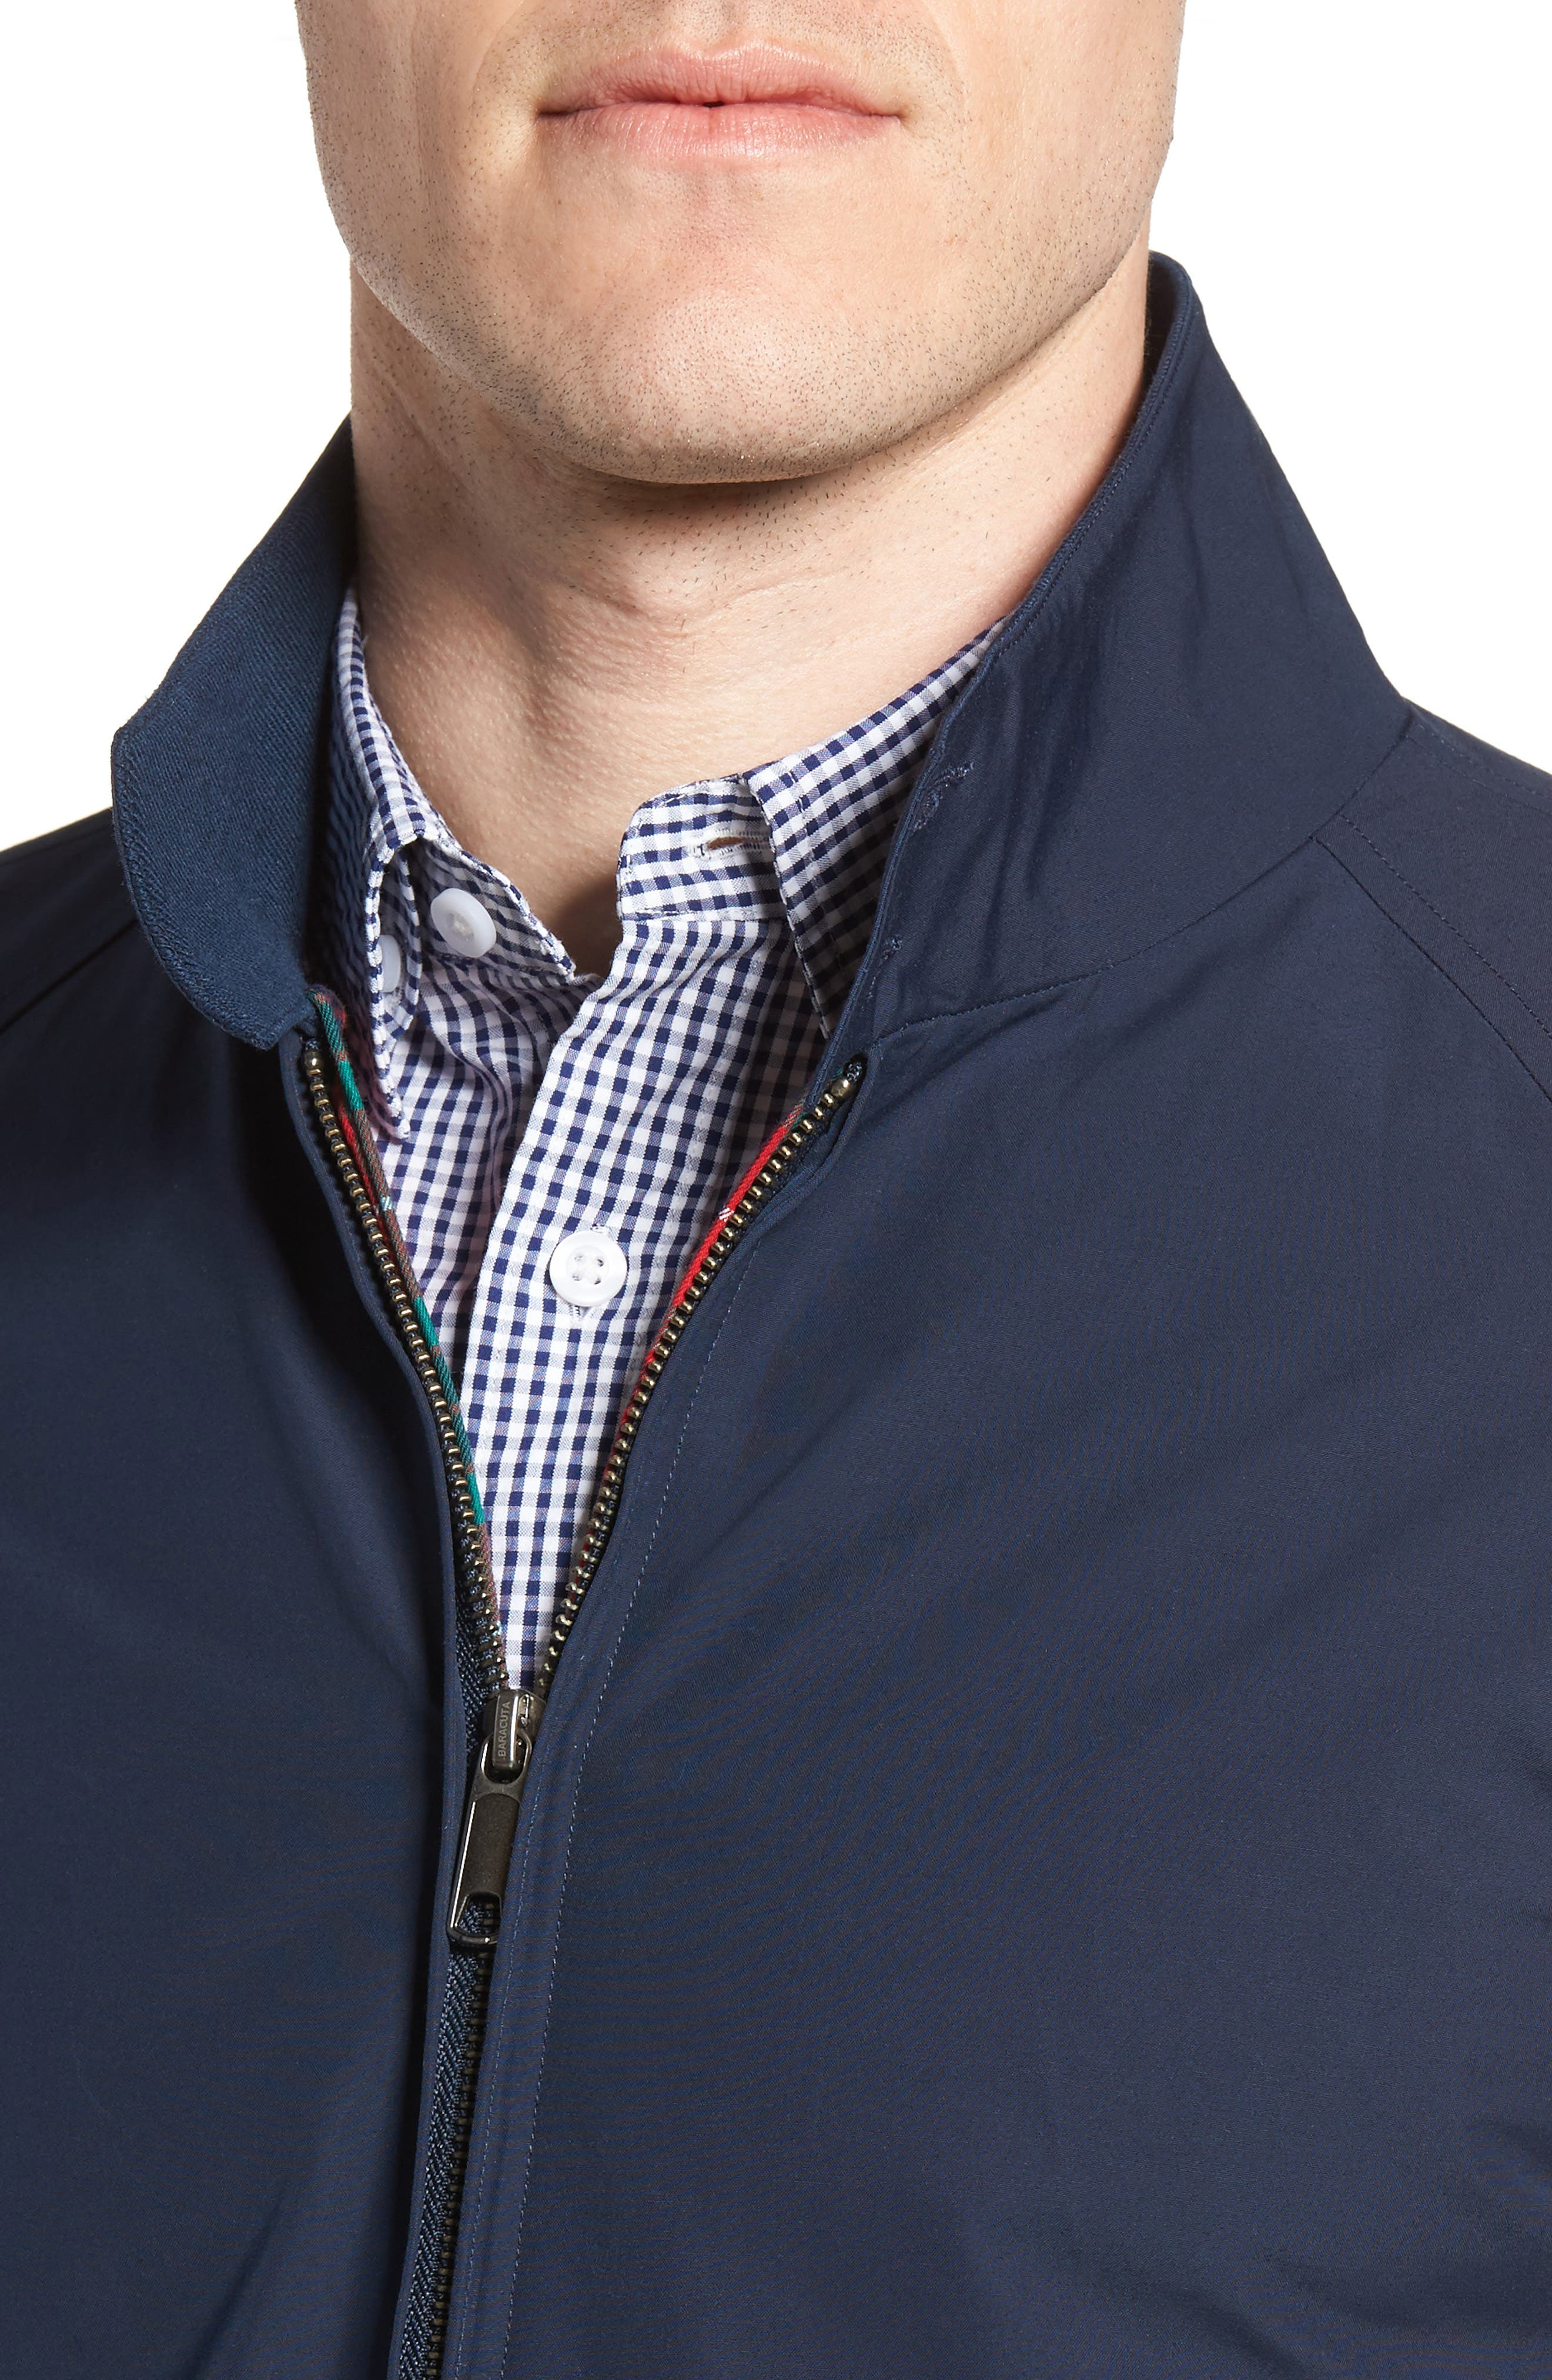 G4 Water Repellent Harrington Jacket,                             Alternate thumbnail 4, color,                             NAVY